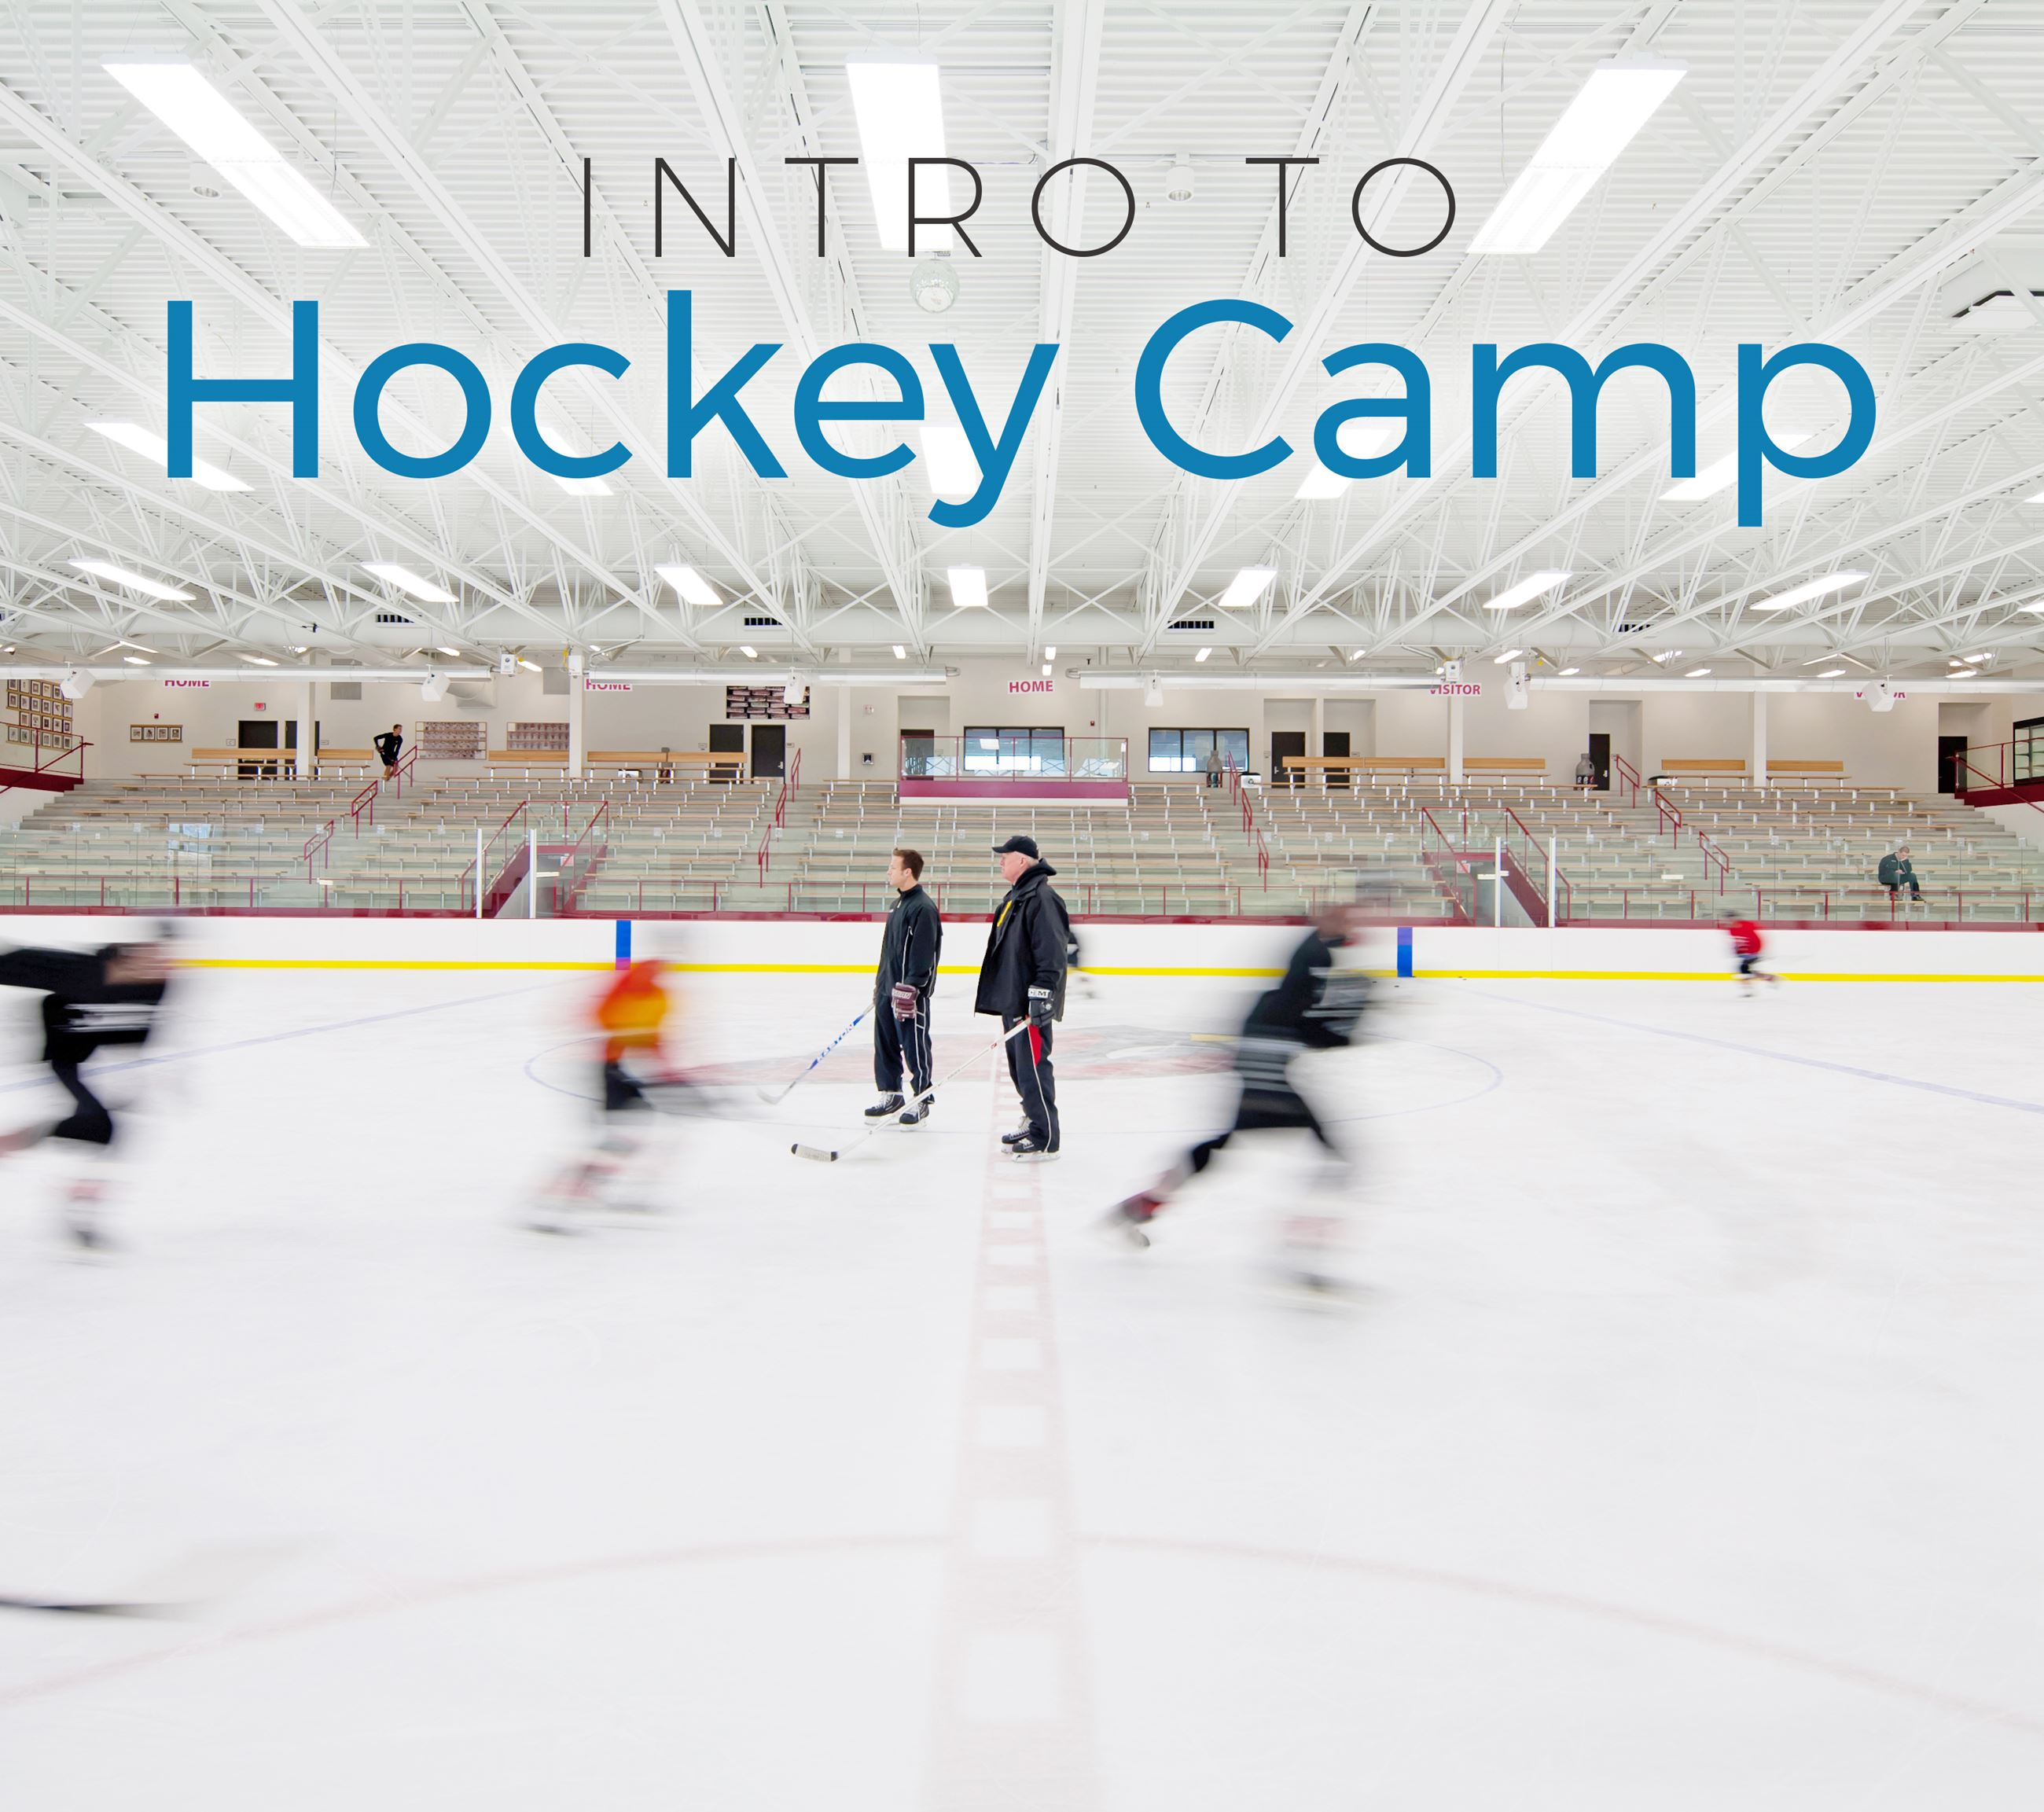 Intro to Hockey Camp Graphic